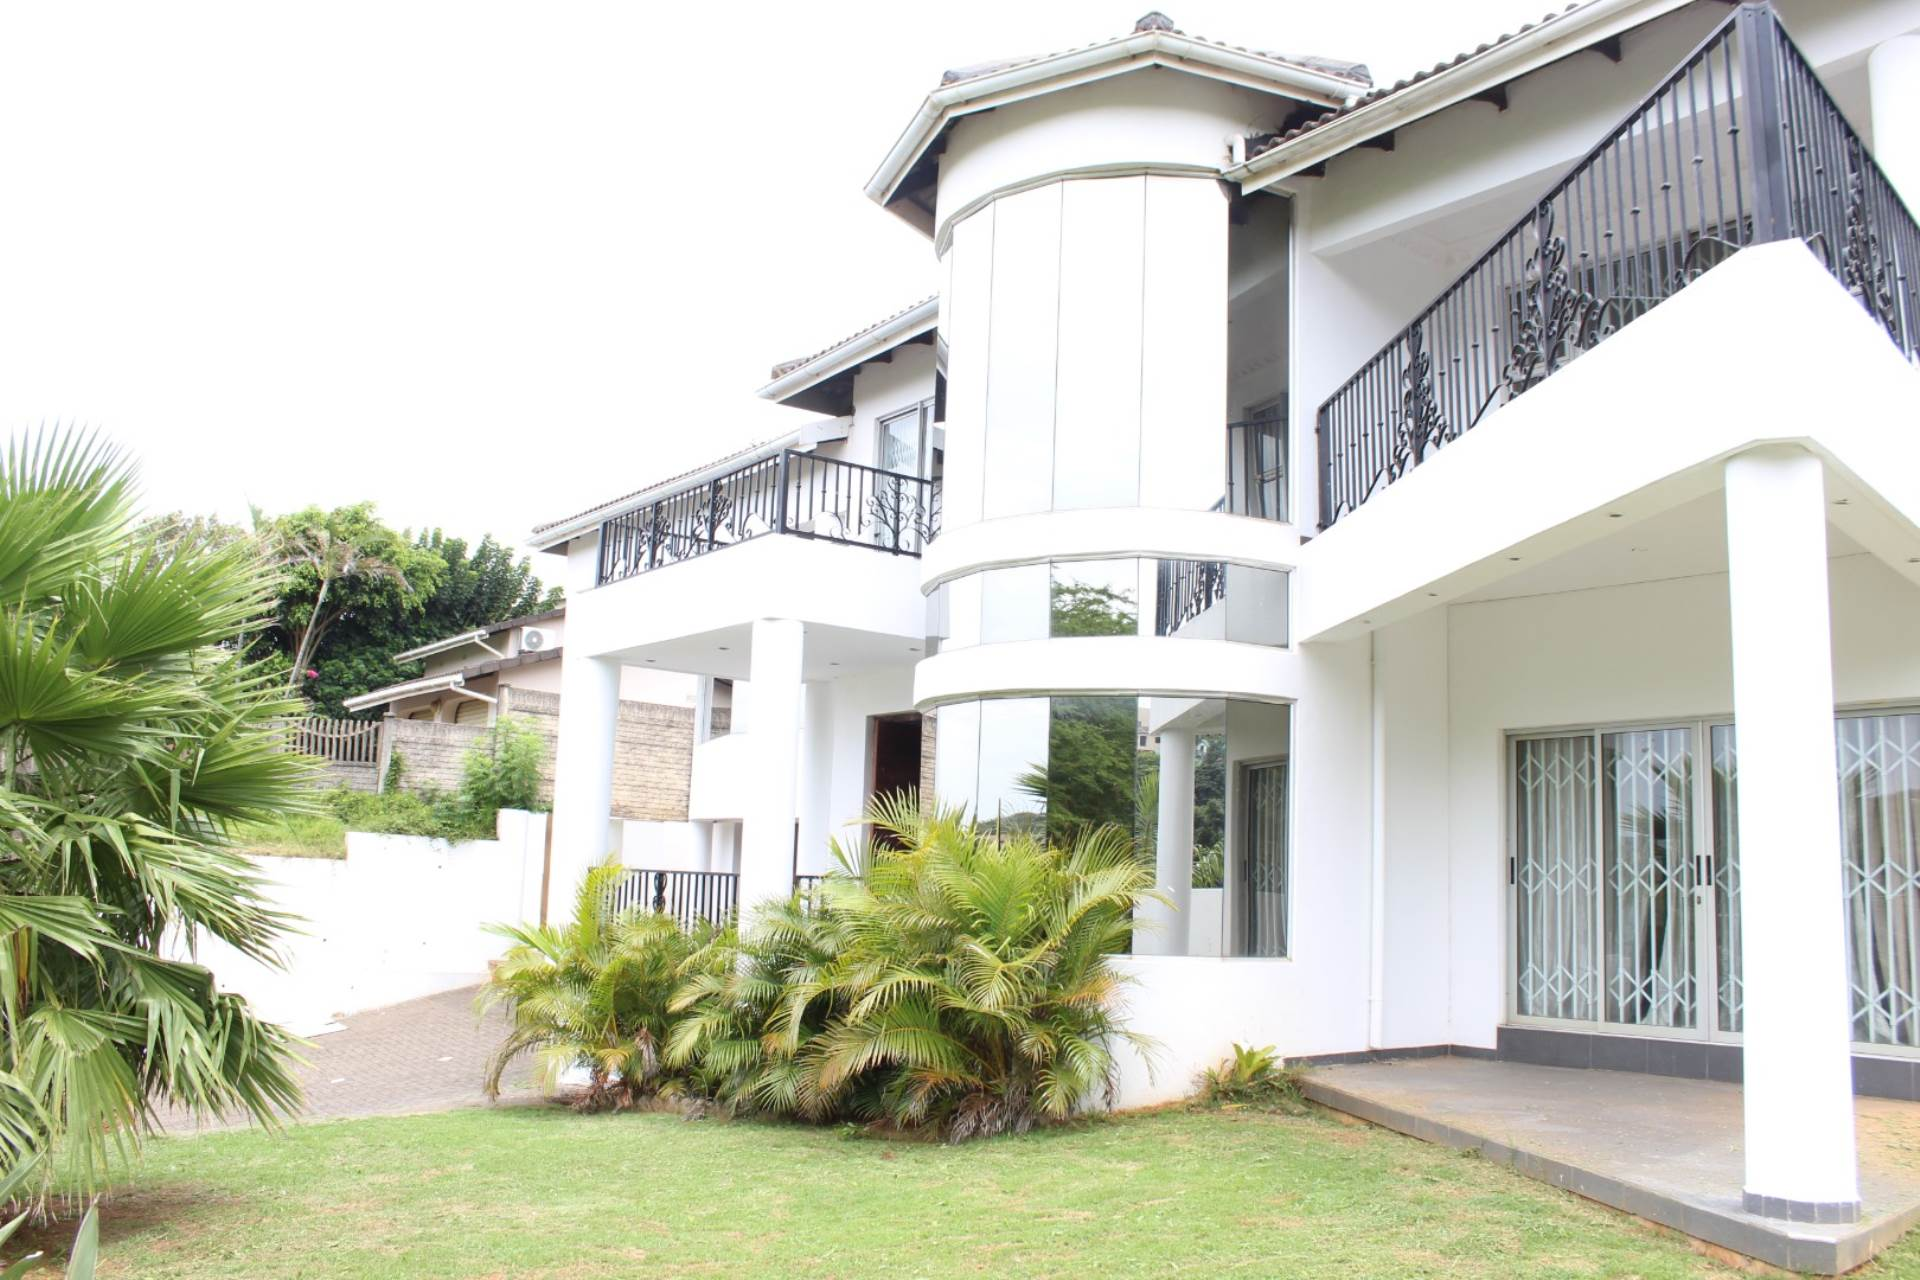 3 BedroomHouse For Sale In Sunningdale